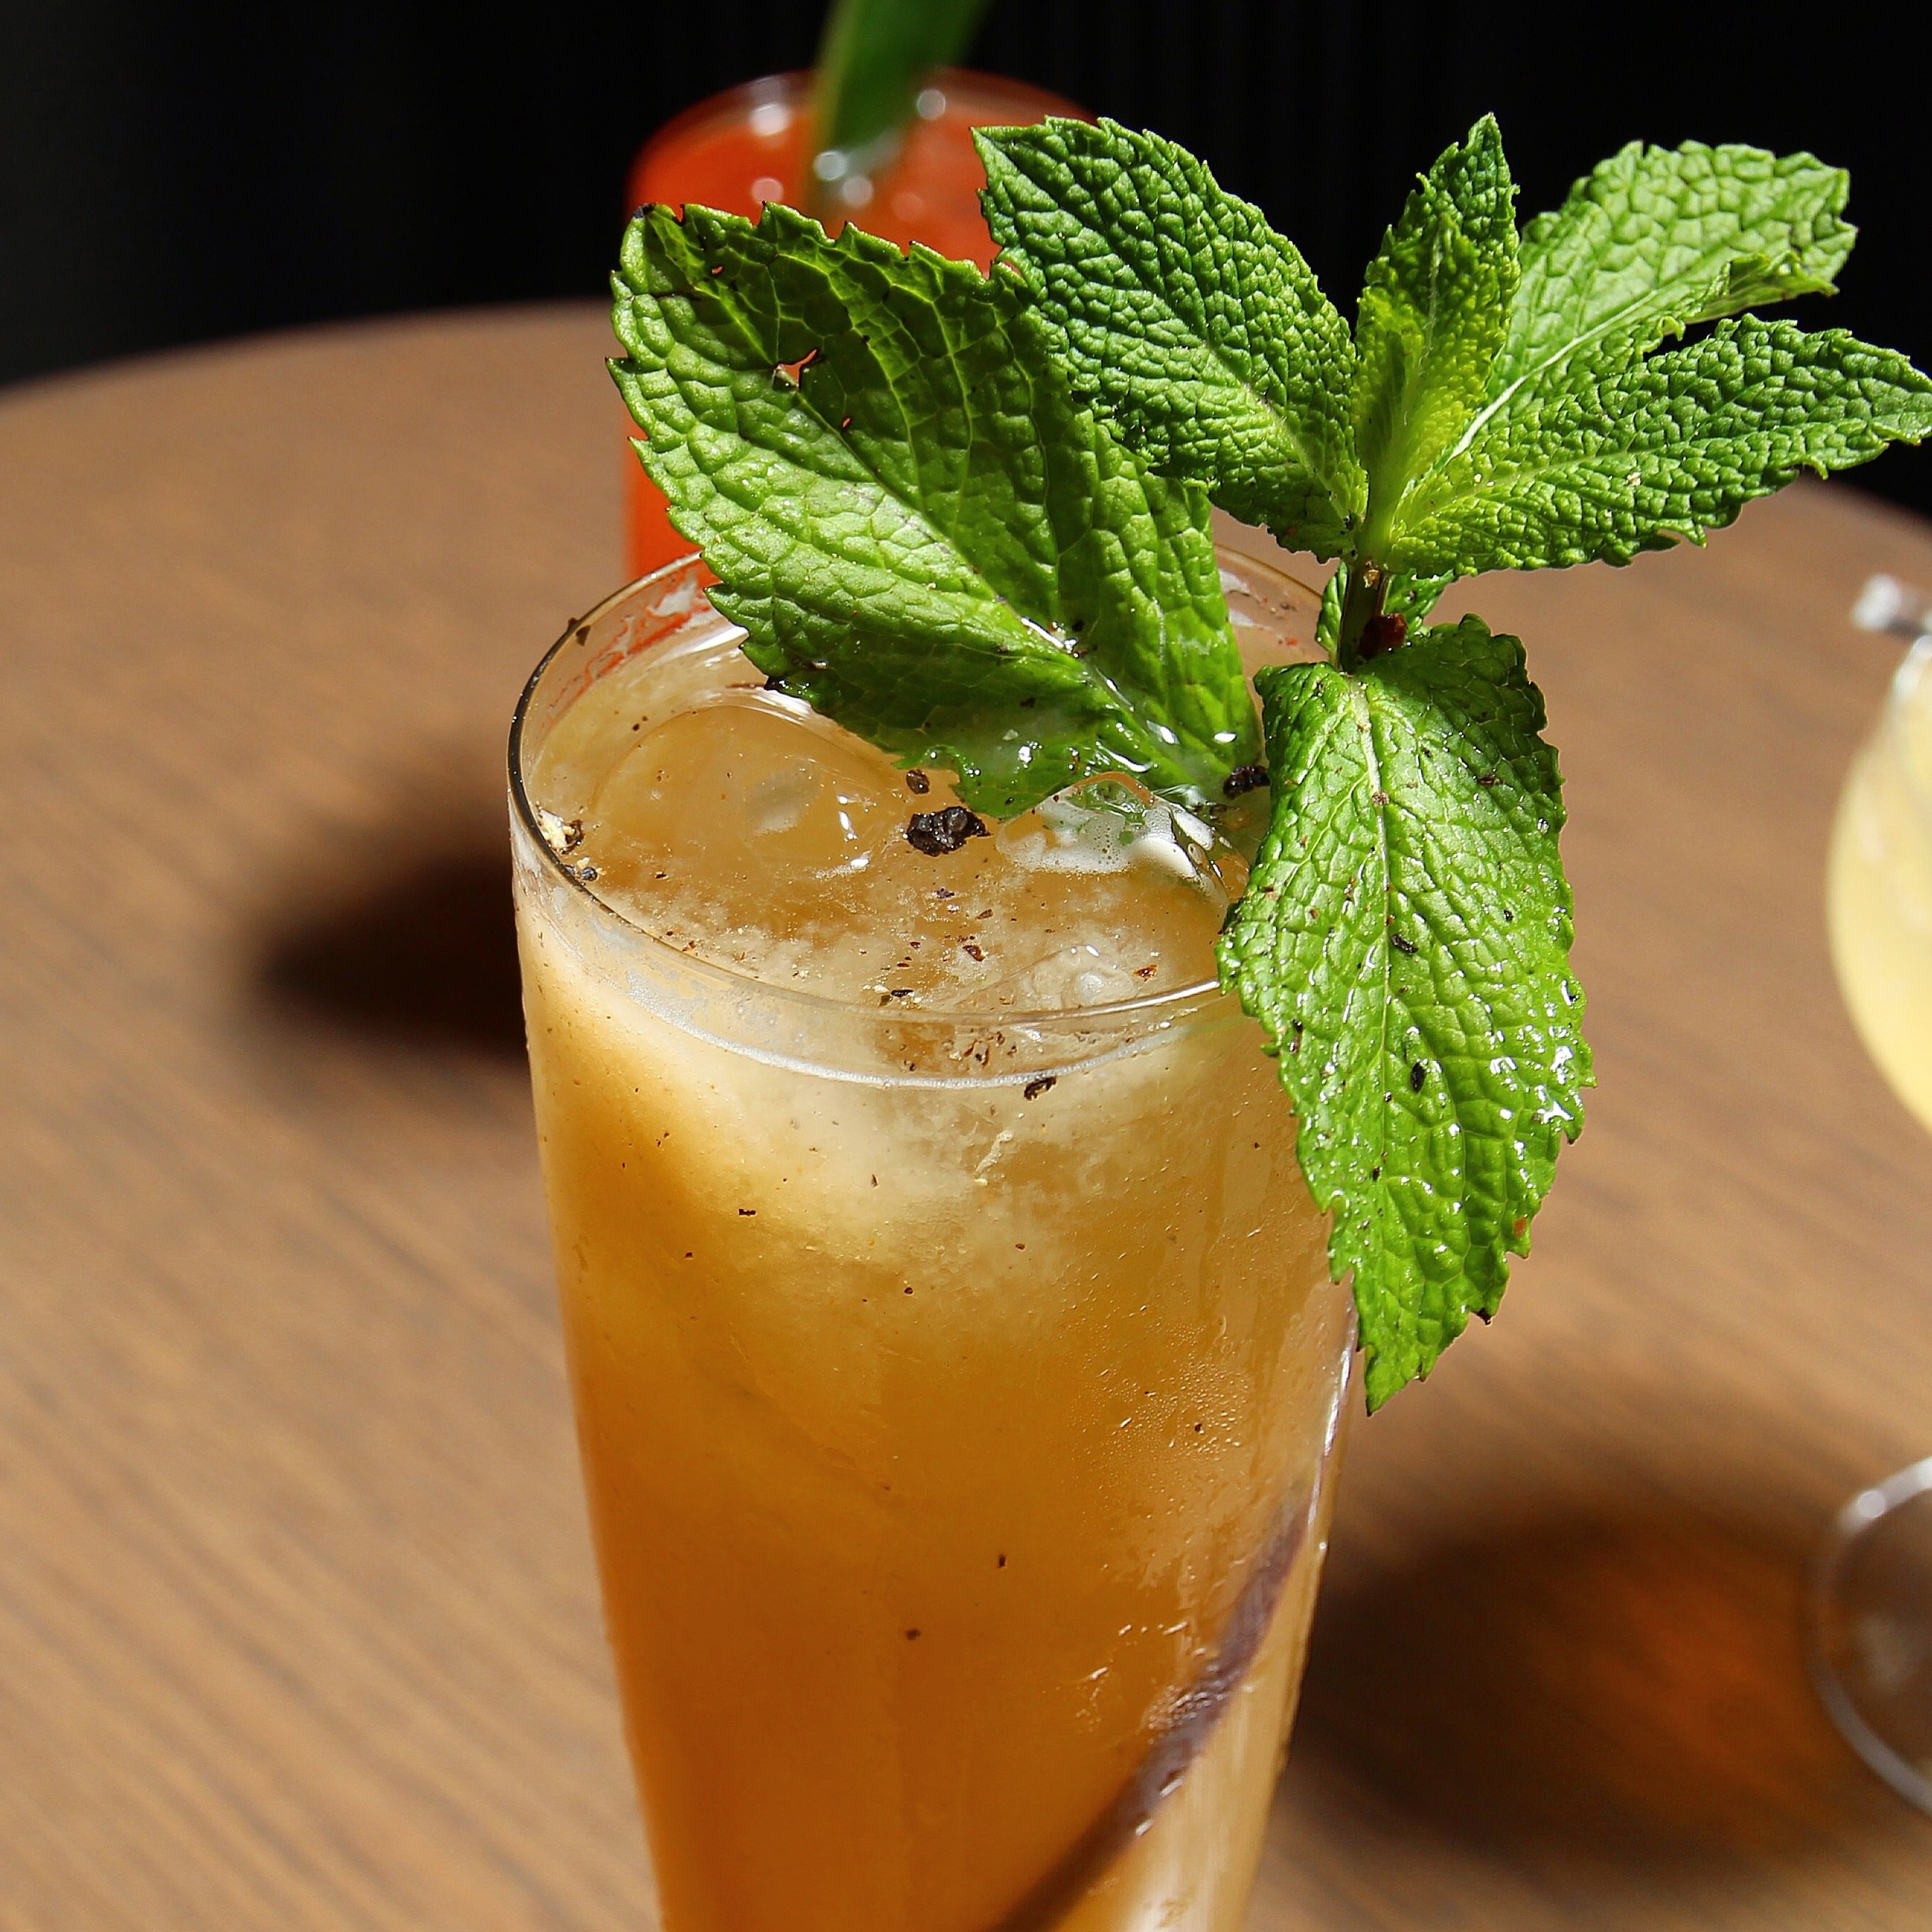 cocktail with mint sprig